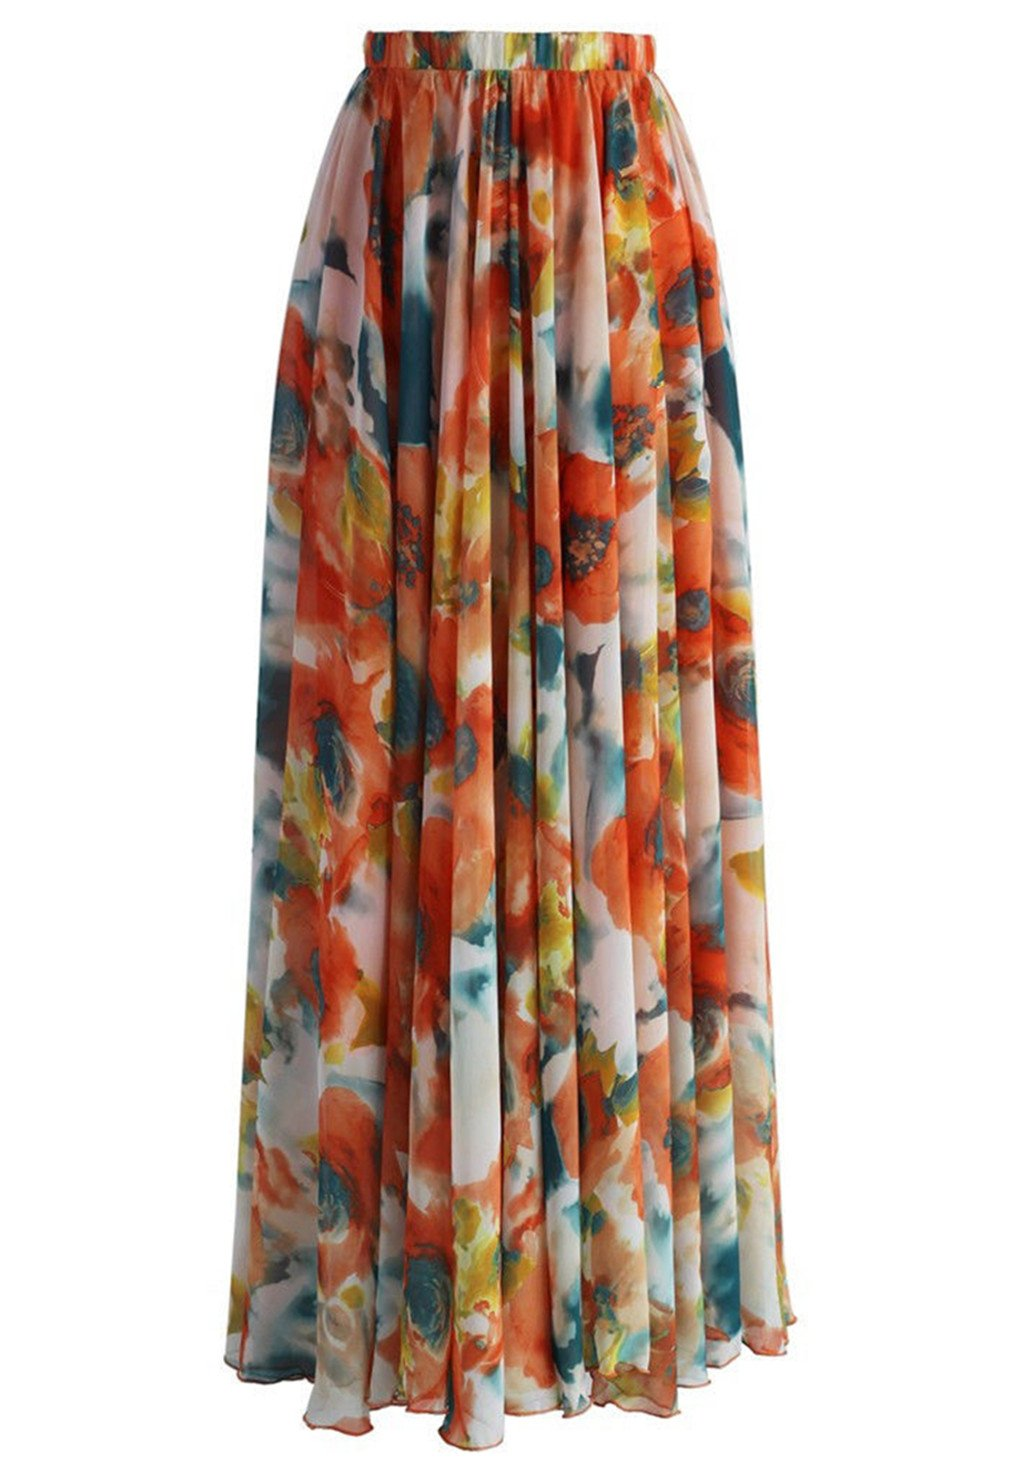 Summer Beach Party Skirt Floral Print Chiffon Long Maxi Skirt Boho Multi M